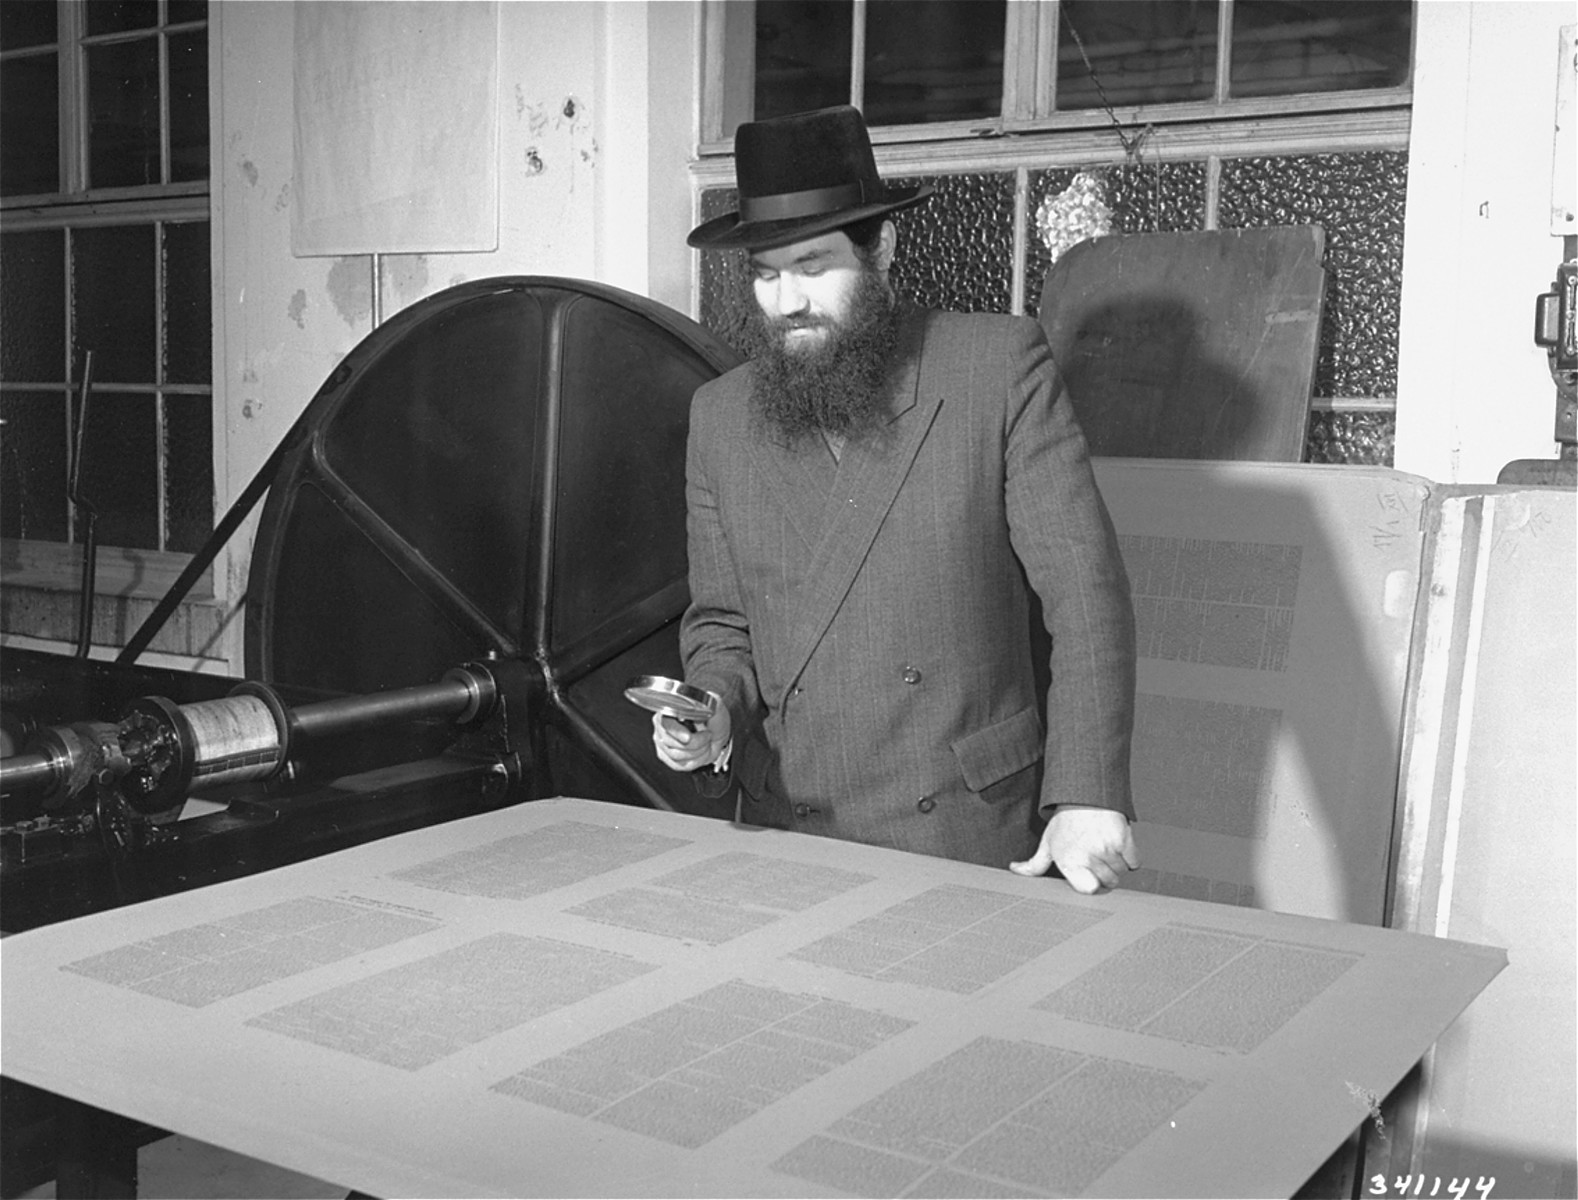 Rabbi Samuel Jakob Rose, rabbi of the American zone of occupation in Germany, and a survivor of Dachau, examines the galleys of the first postwar edition of the Talmud to be printed in Germany.